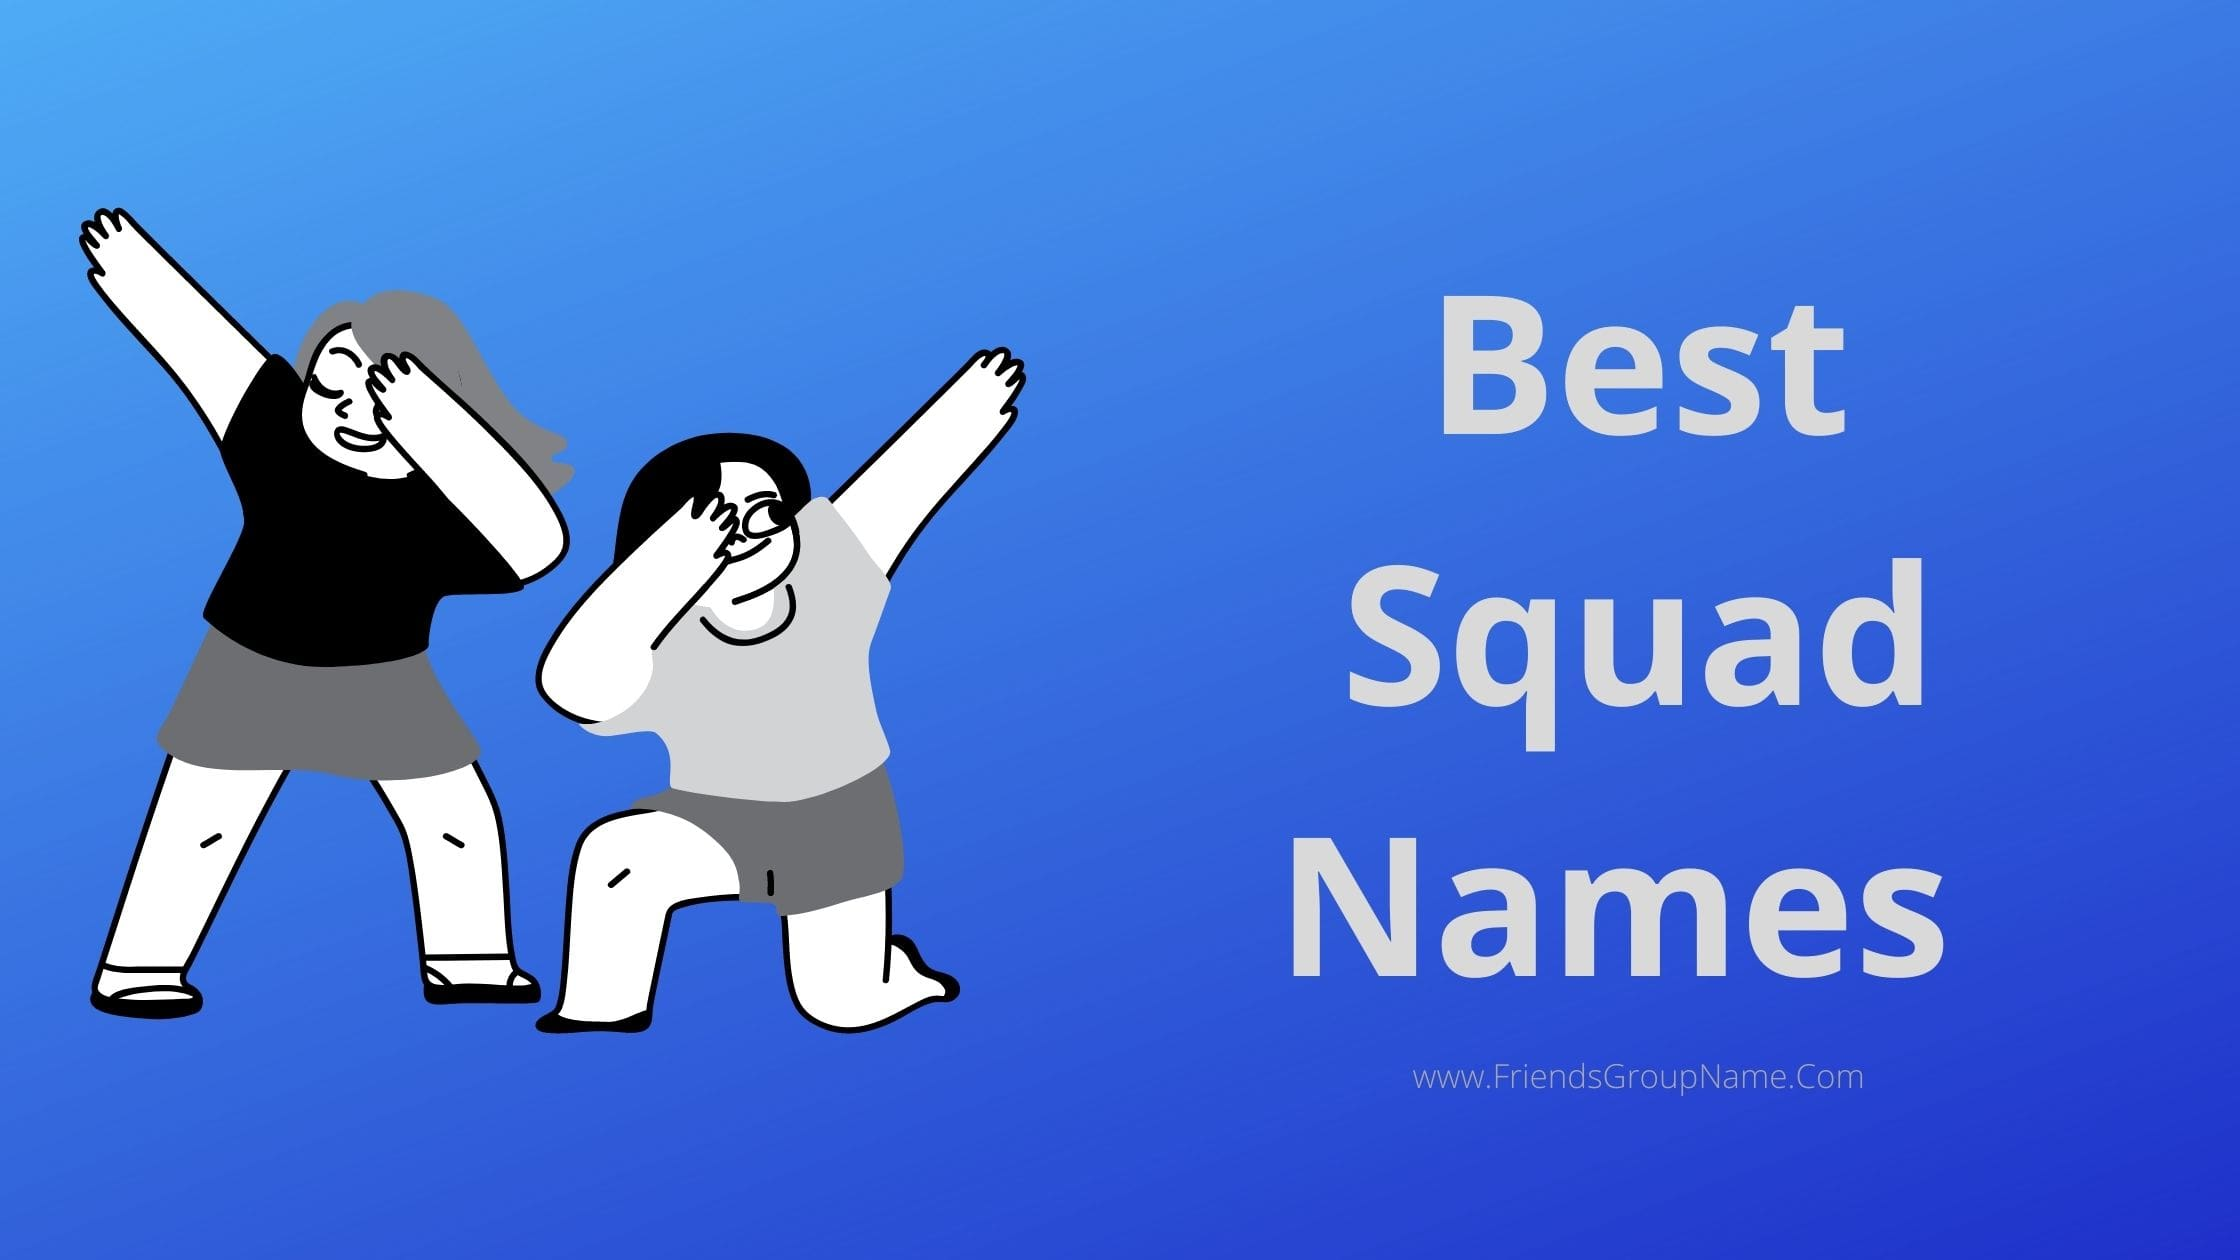 Best Squad Names